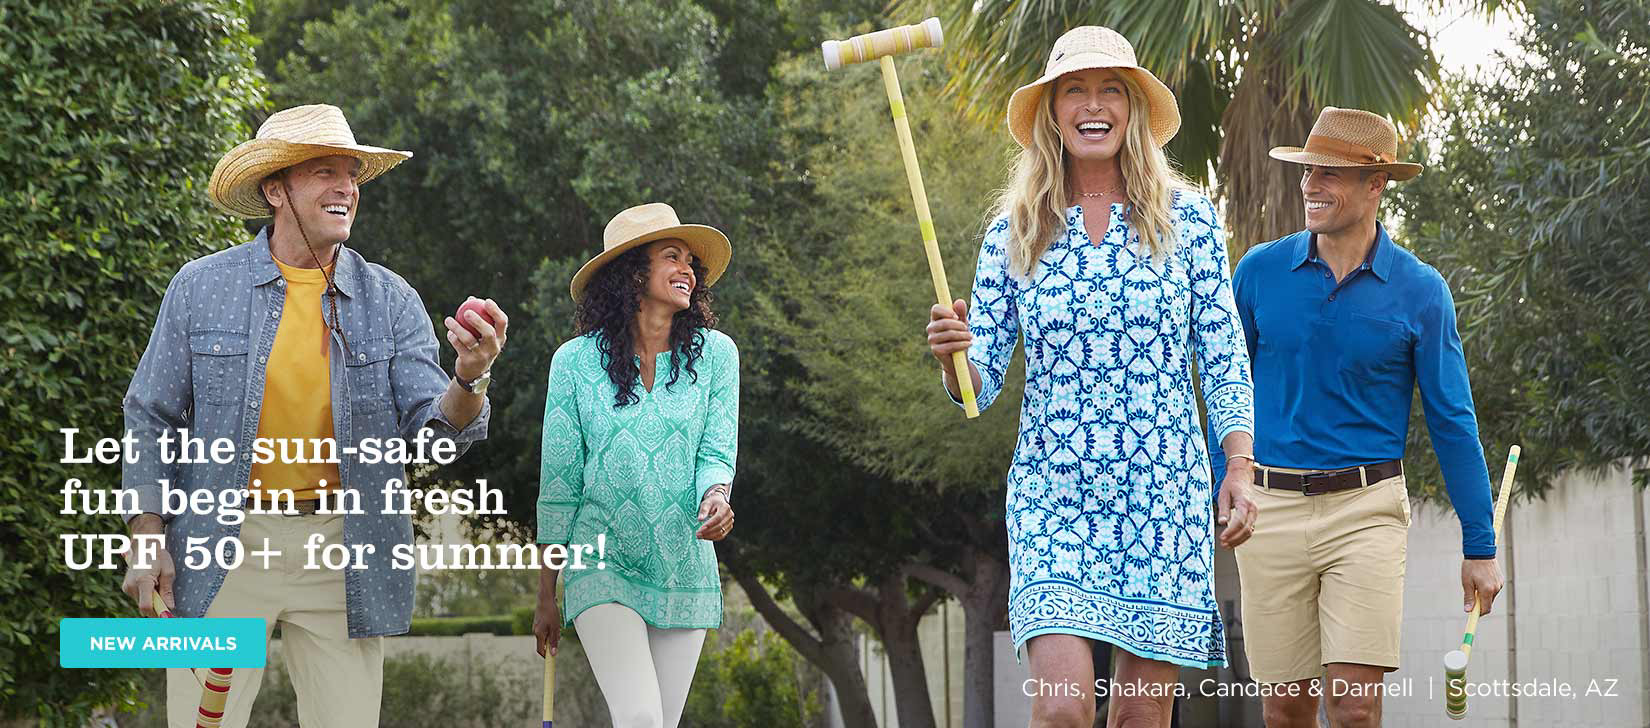 Let the sun safe fun begin in fresh UPF 50+ for summer.